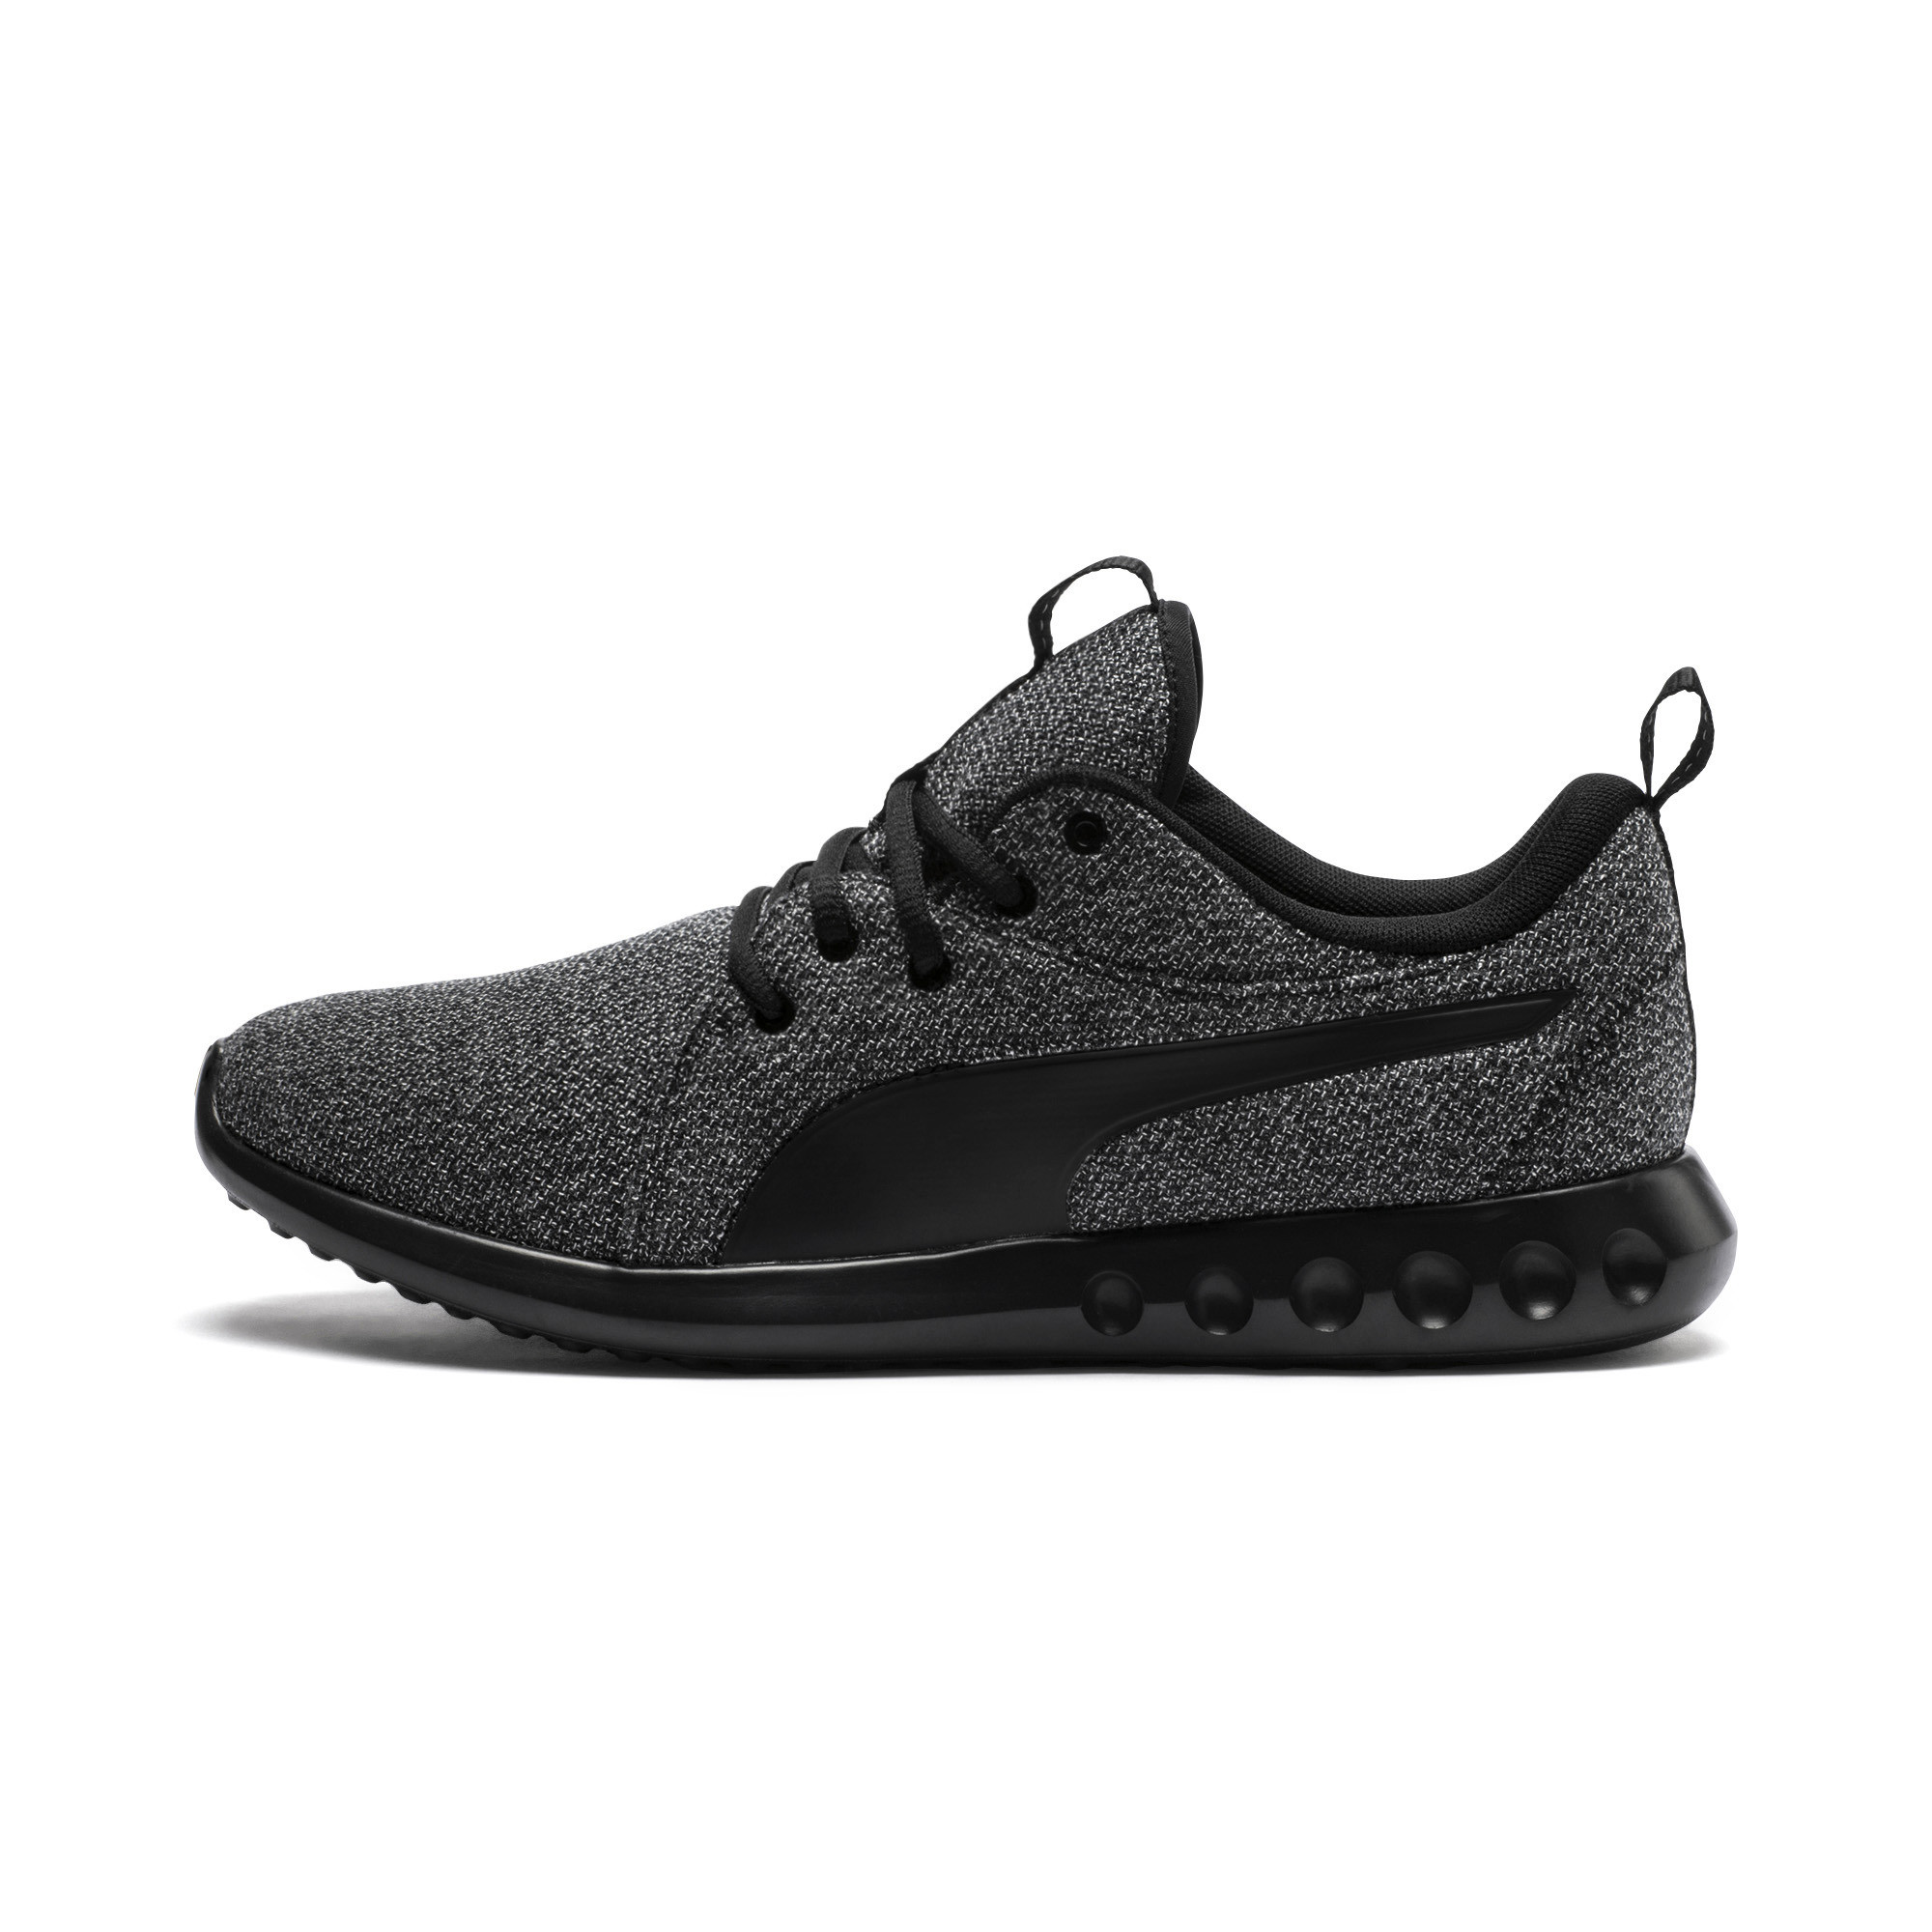 PUMA-Men-039-s-Carson-2-Knit-Training-Shoes thumbnail 4